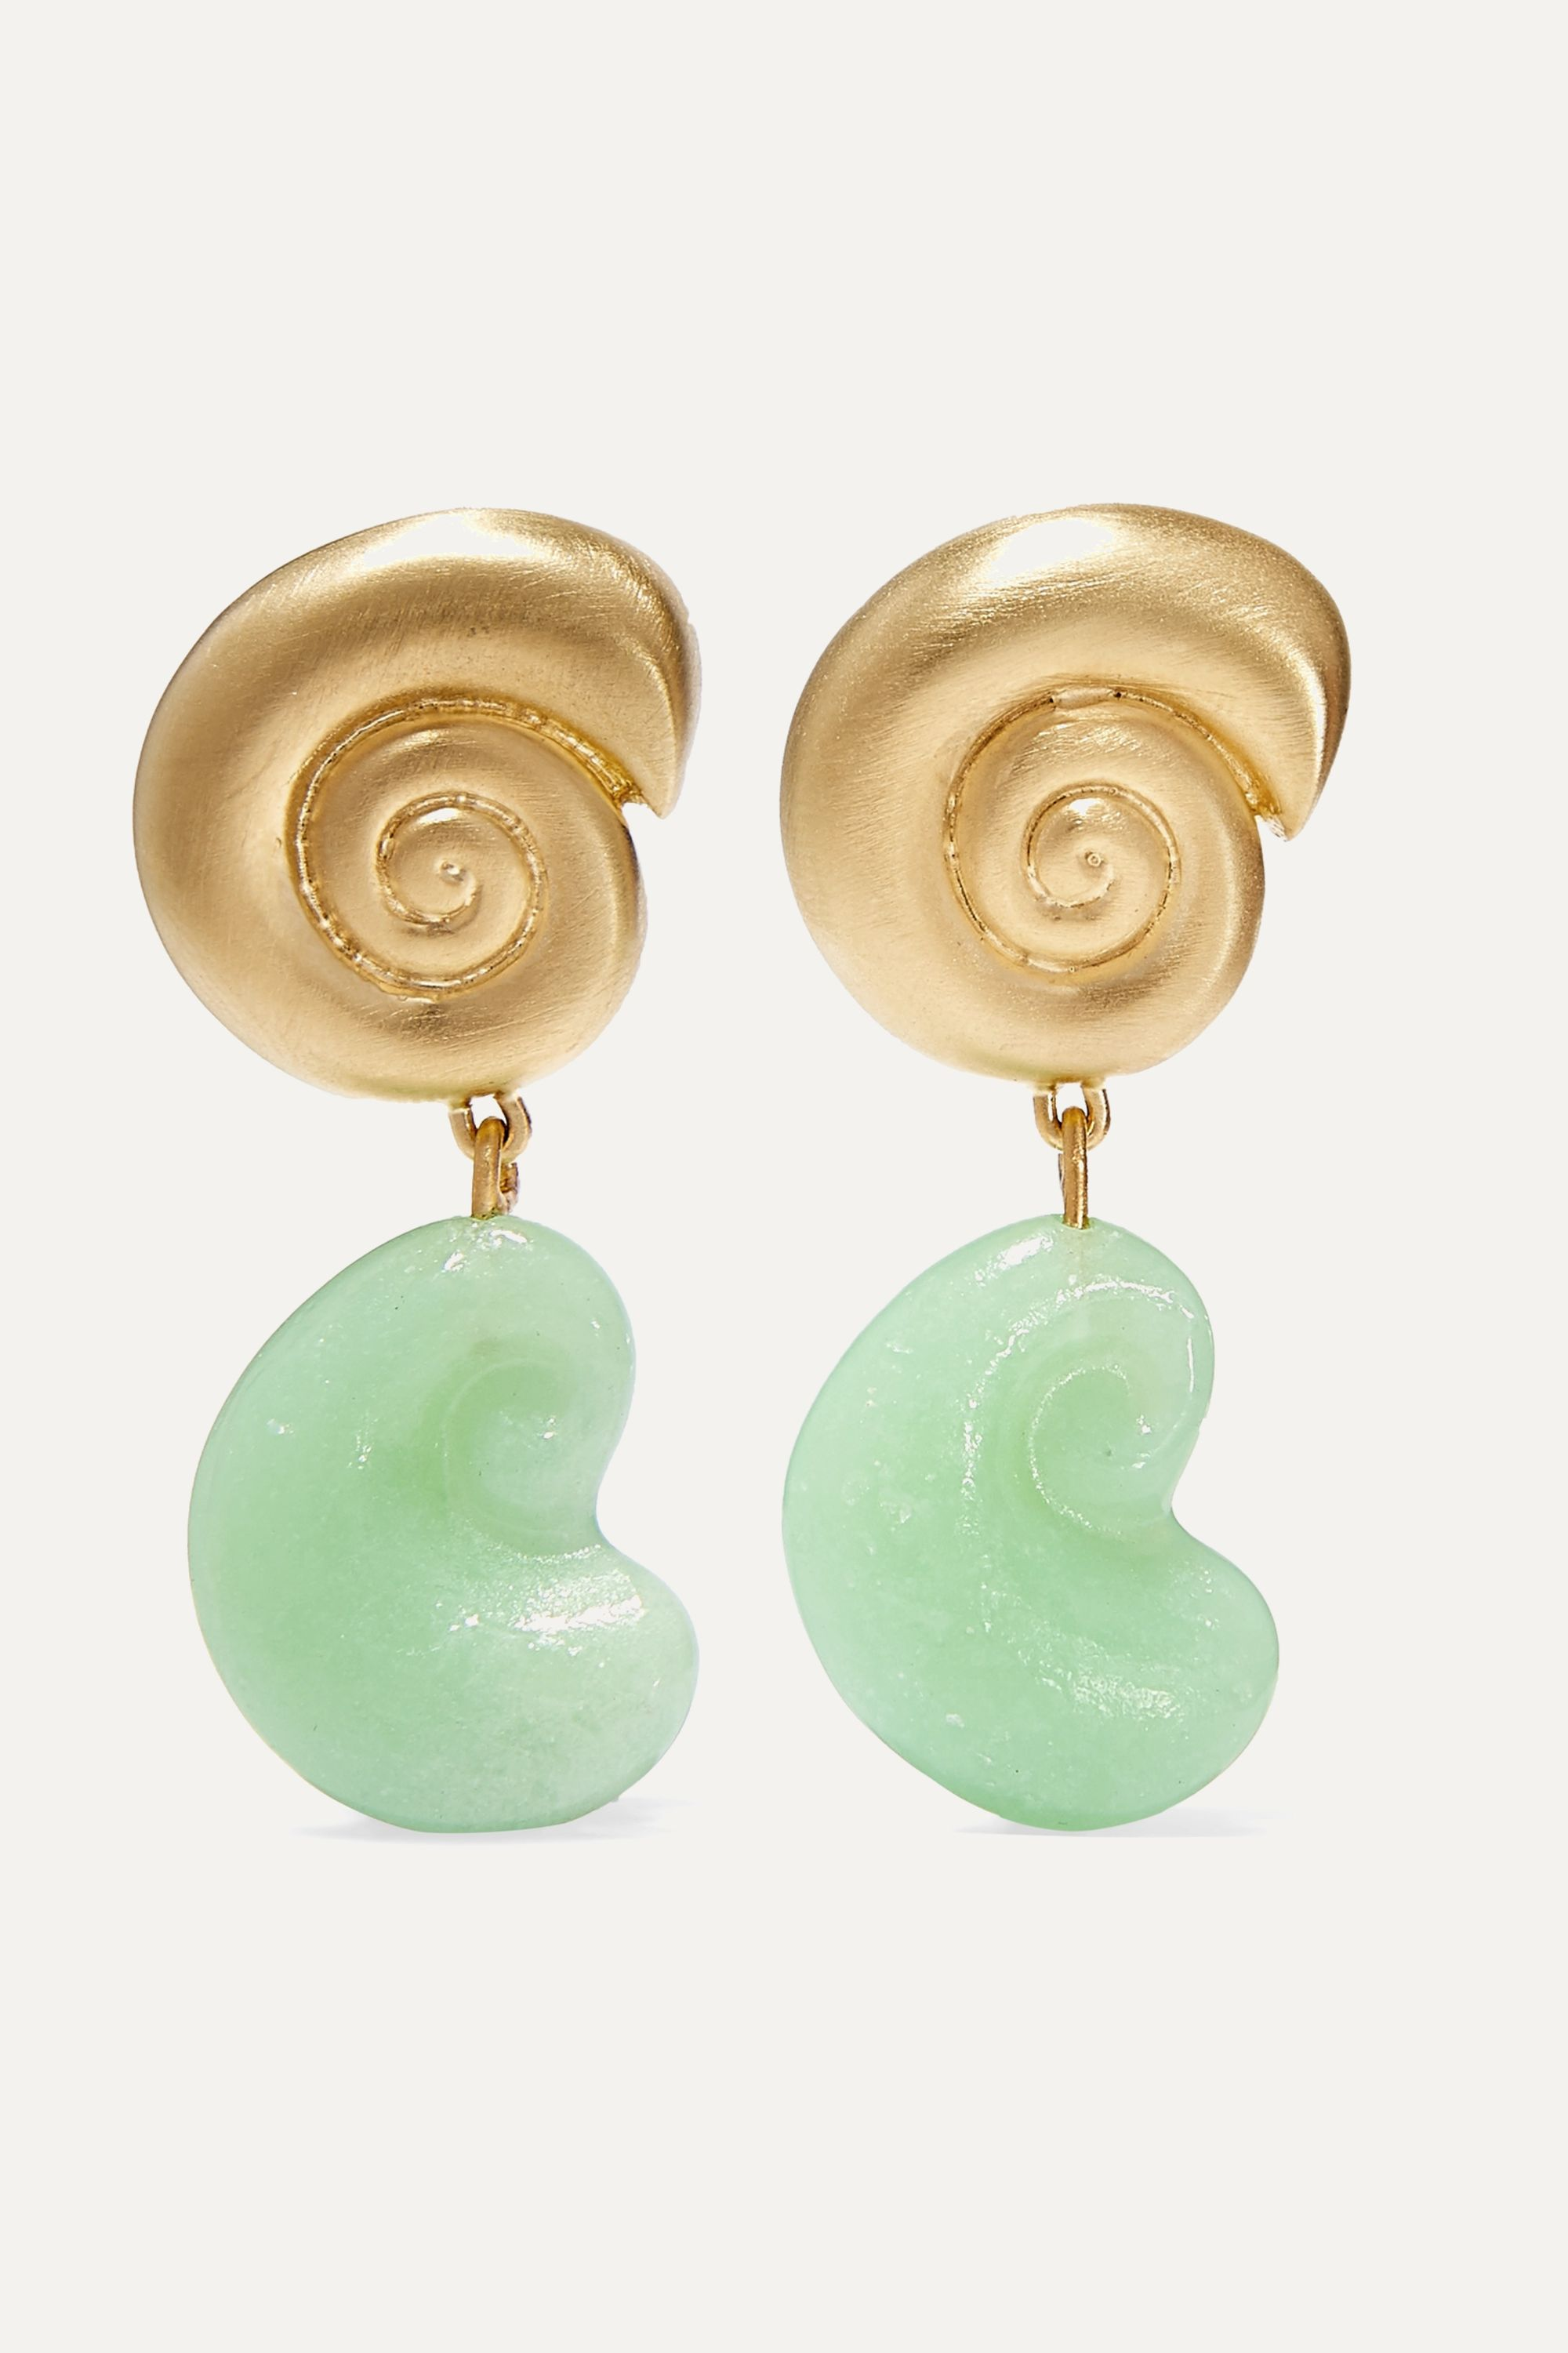 Leigh Miller + NET SUSTAIN Nautilus gold-plated glass earrings